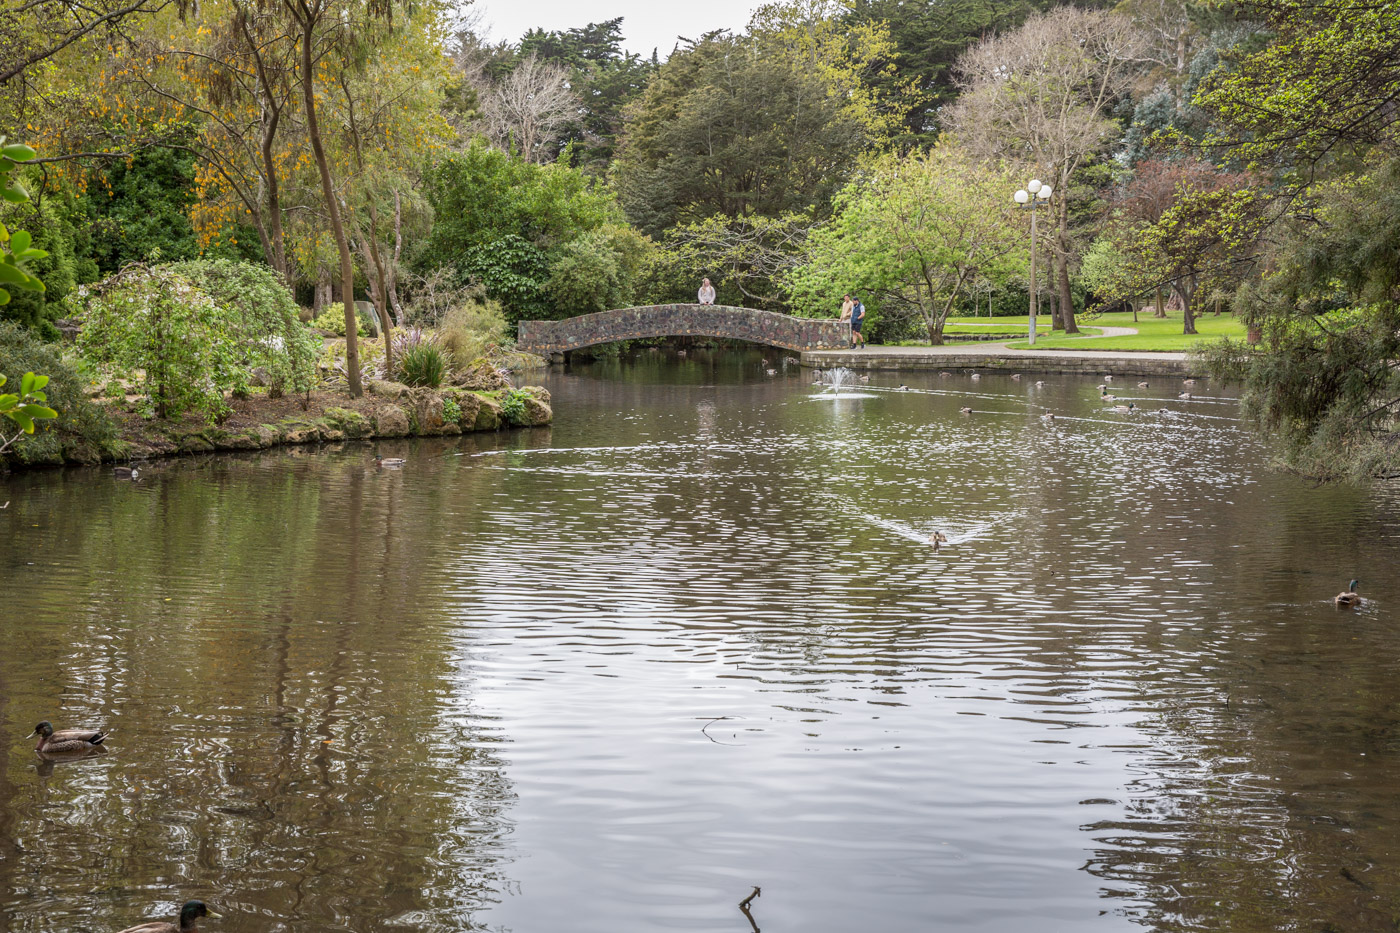 The Queen's Park, Invercargill, South Island, New Zealand